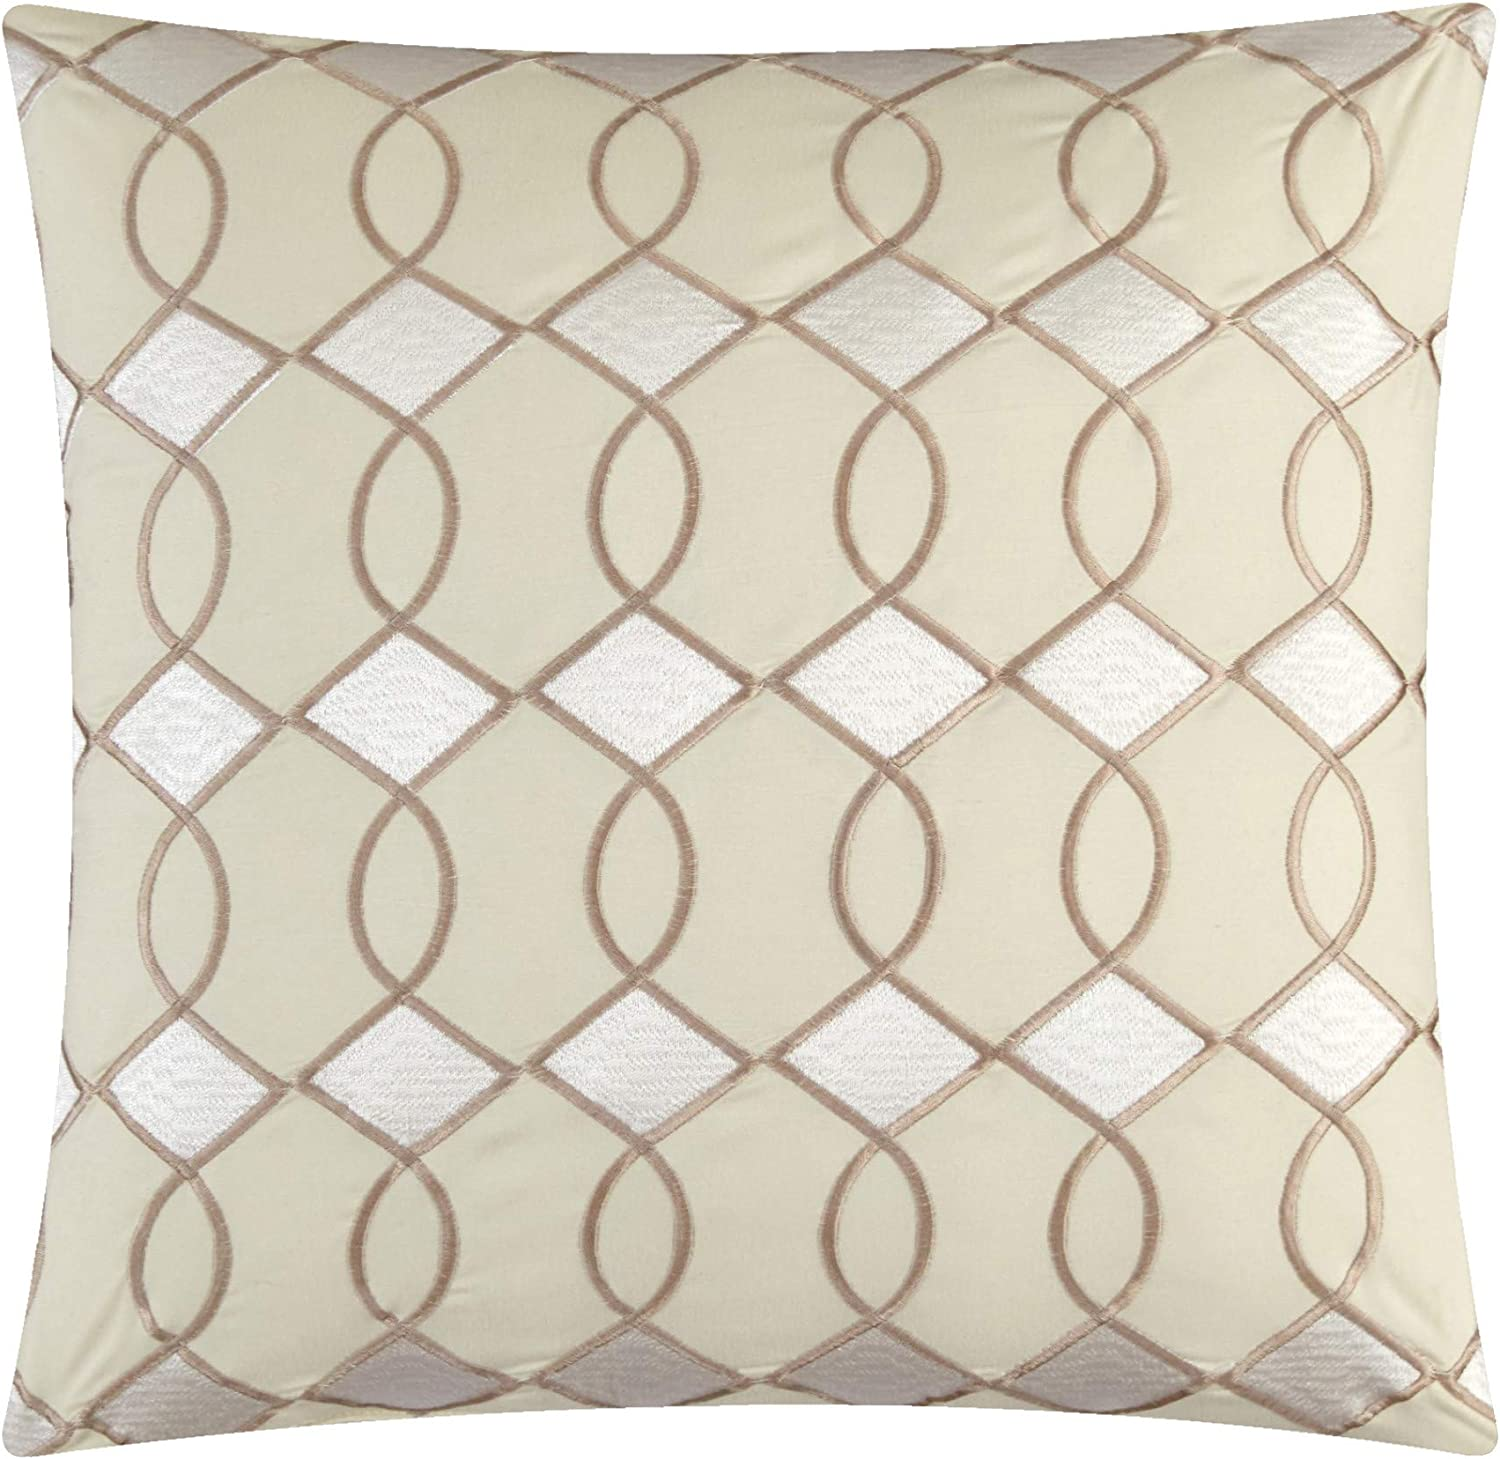 Chic Home Katrin 20 Piece Comforter Color Block Geometric Embroidered Bag Bedding-Sheet Set Pillowcases Window Treatments Decorative Pillows Shams Included King Beige